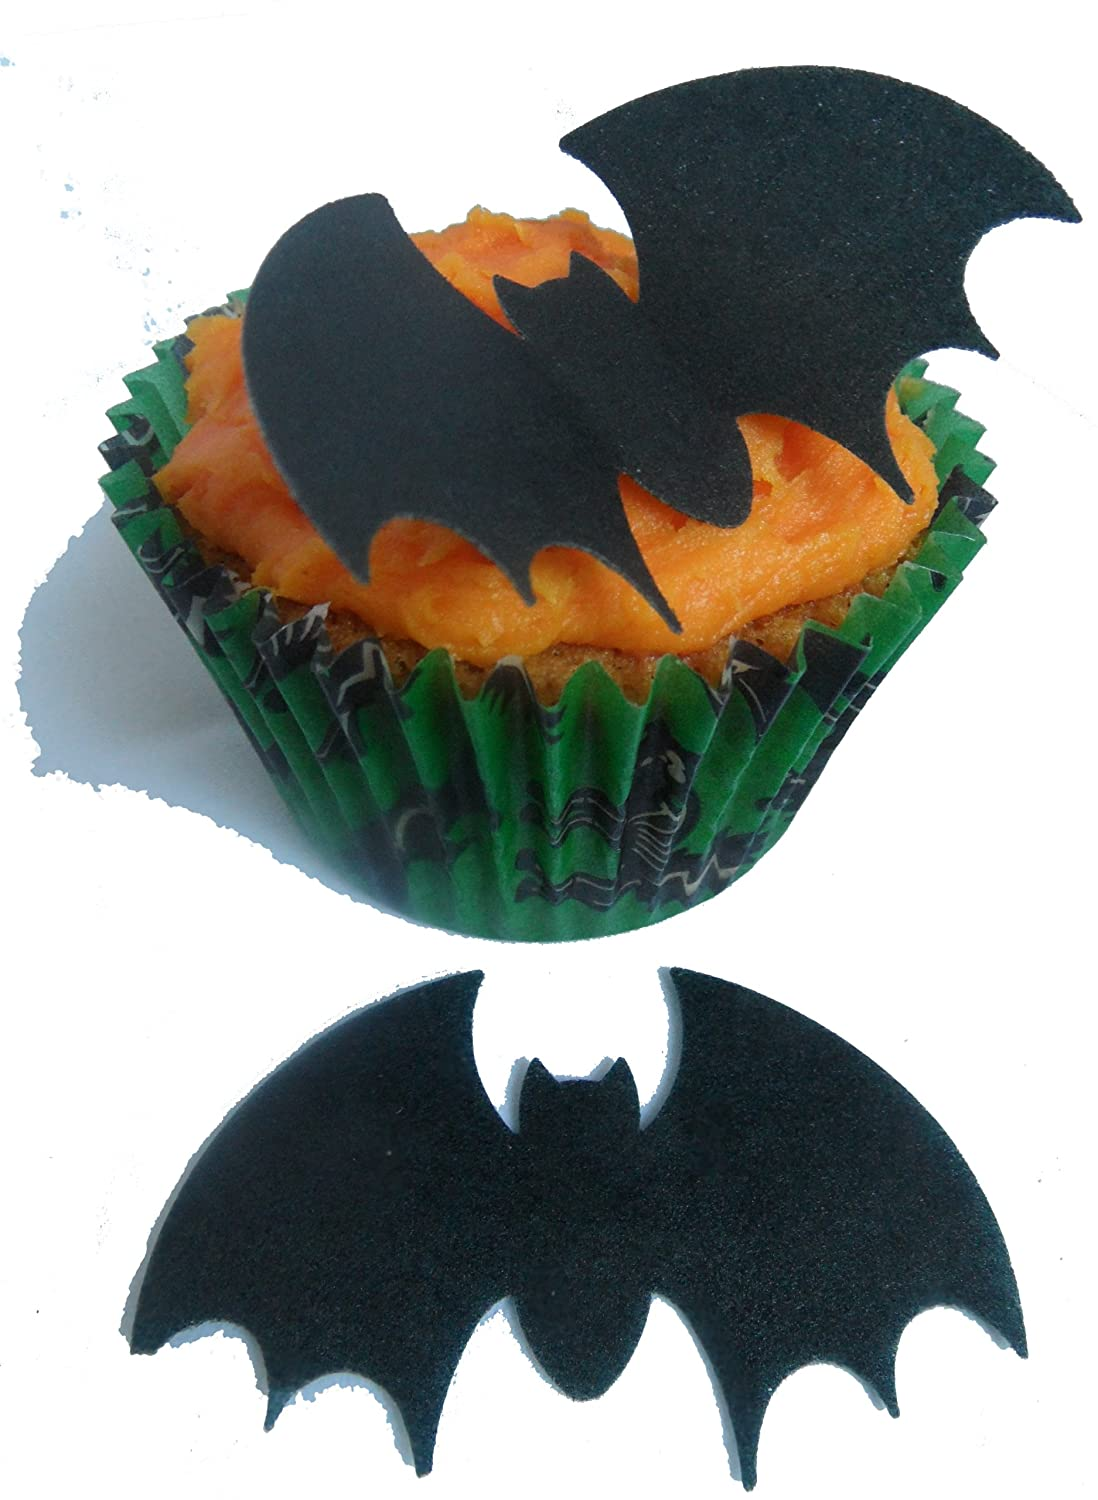 toppercake edible wafer halloween bat cup cake decorations amazoncouk grocery - Halloween Bat Decorations